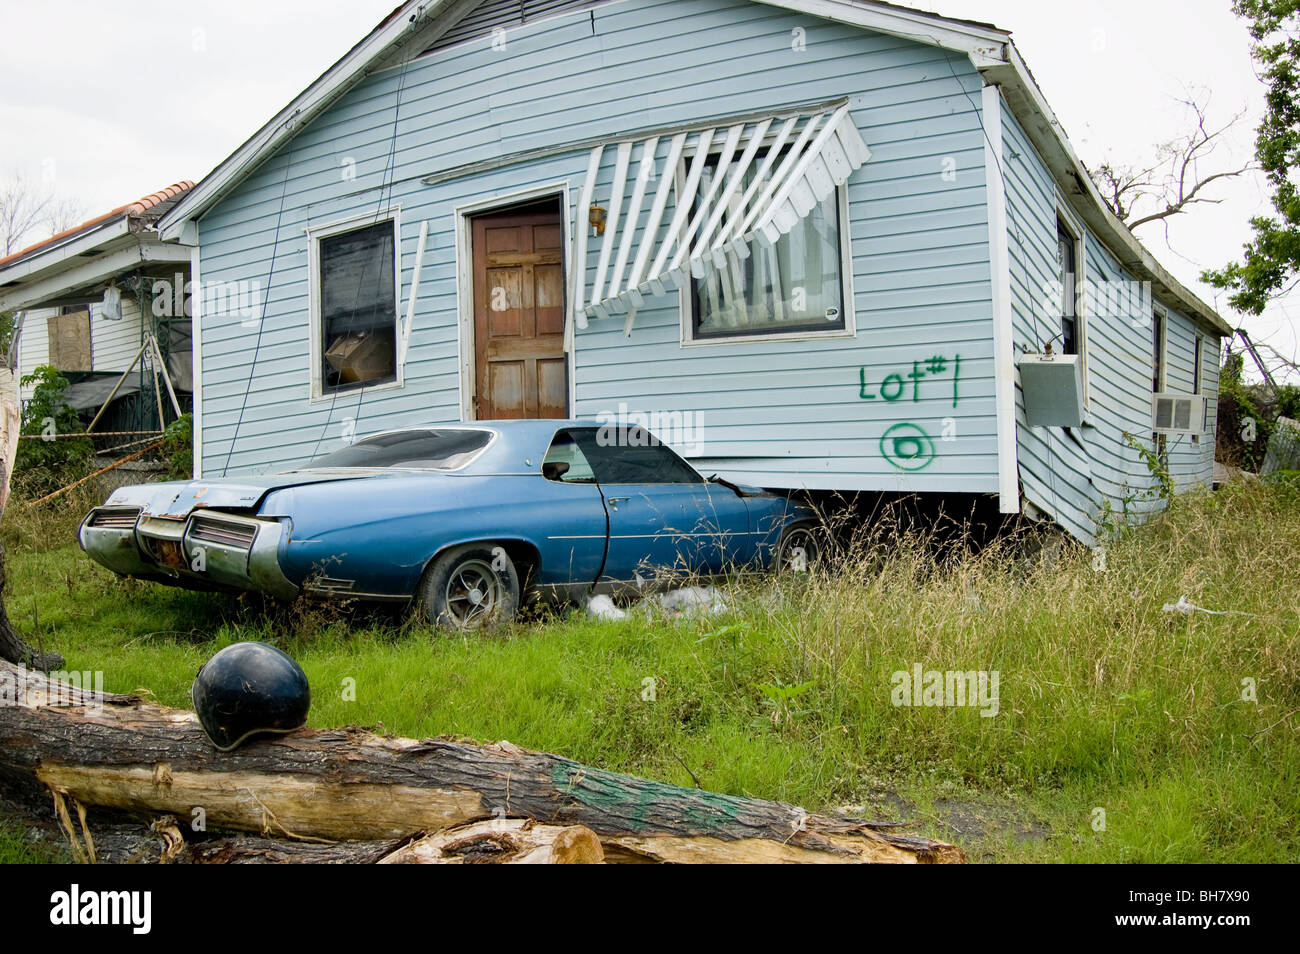 A home sits atop a car in the Lower Ninth Ward, New Orleans. - Stock Image